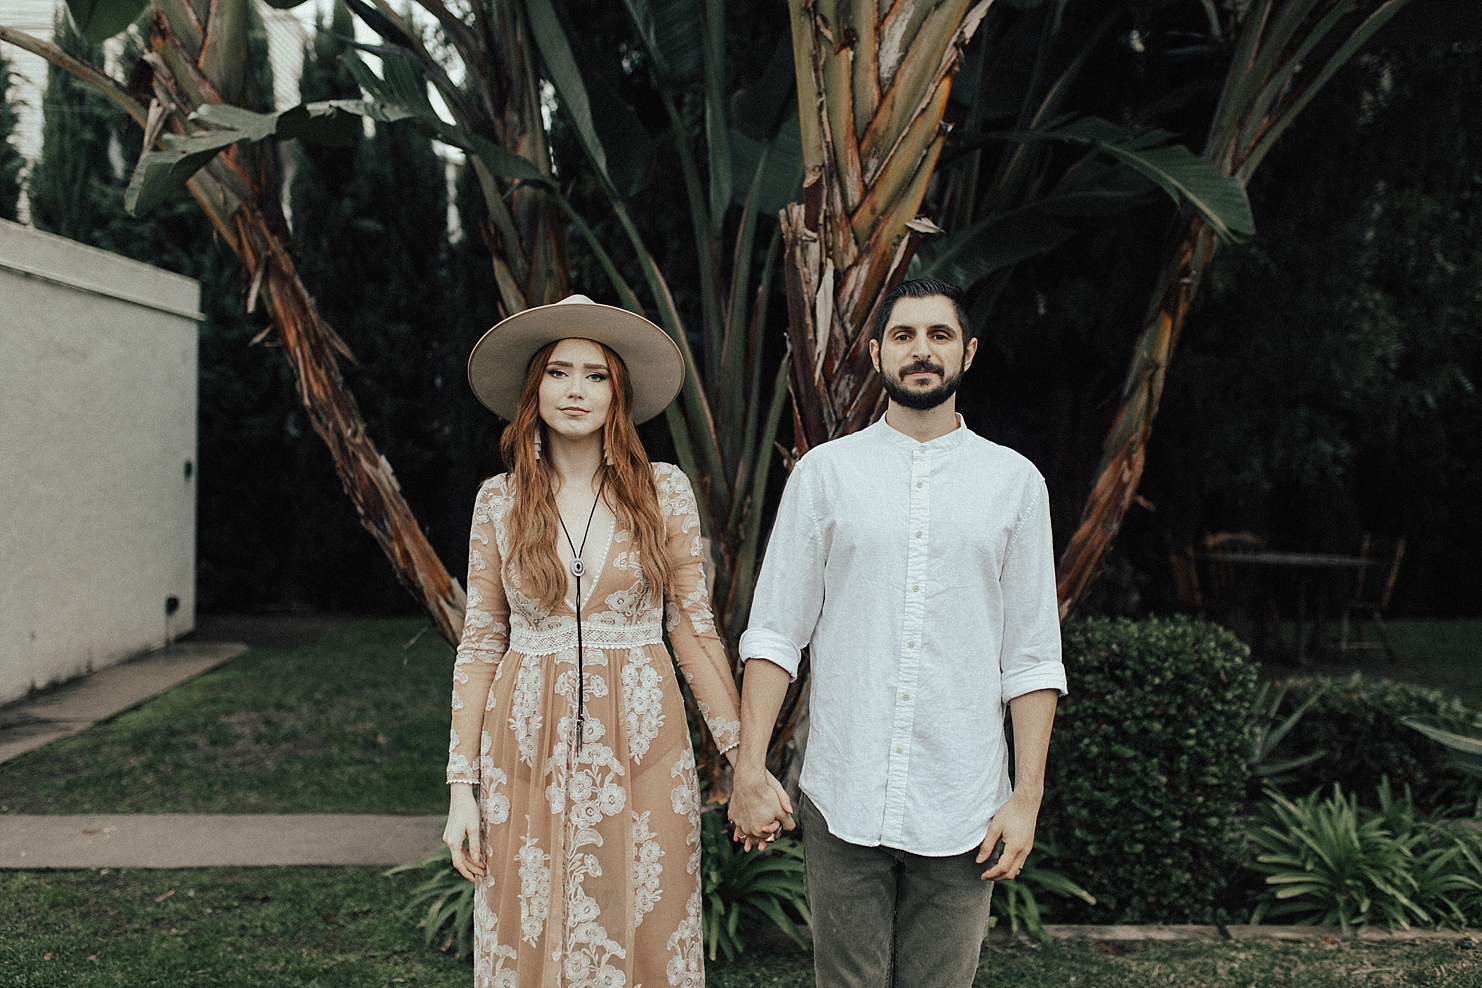 LONG BEACH ELOPEMENT INDIE BRIDE BOHO LOS ANGELES PHOTOGRAPHER RACHEL WAKEFIELD LA ELOPEMENT PHOTOGRAPHER-96.jpg